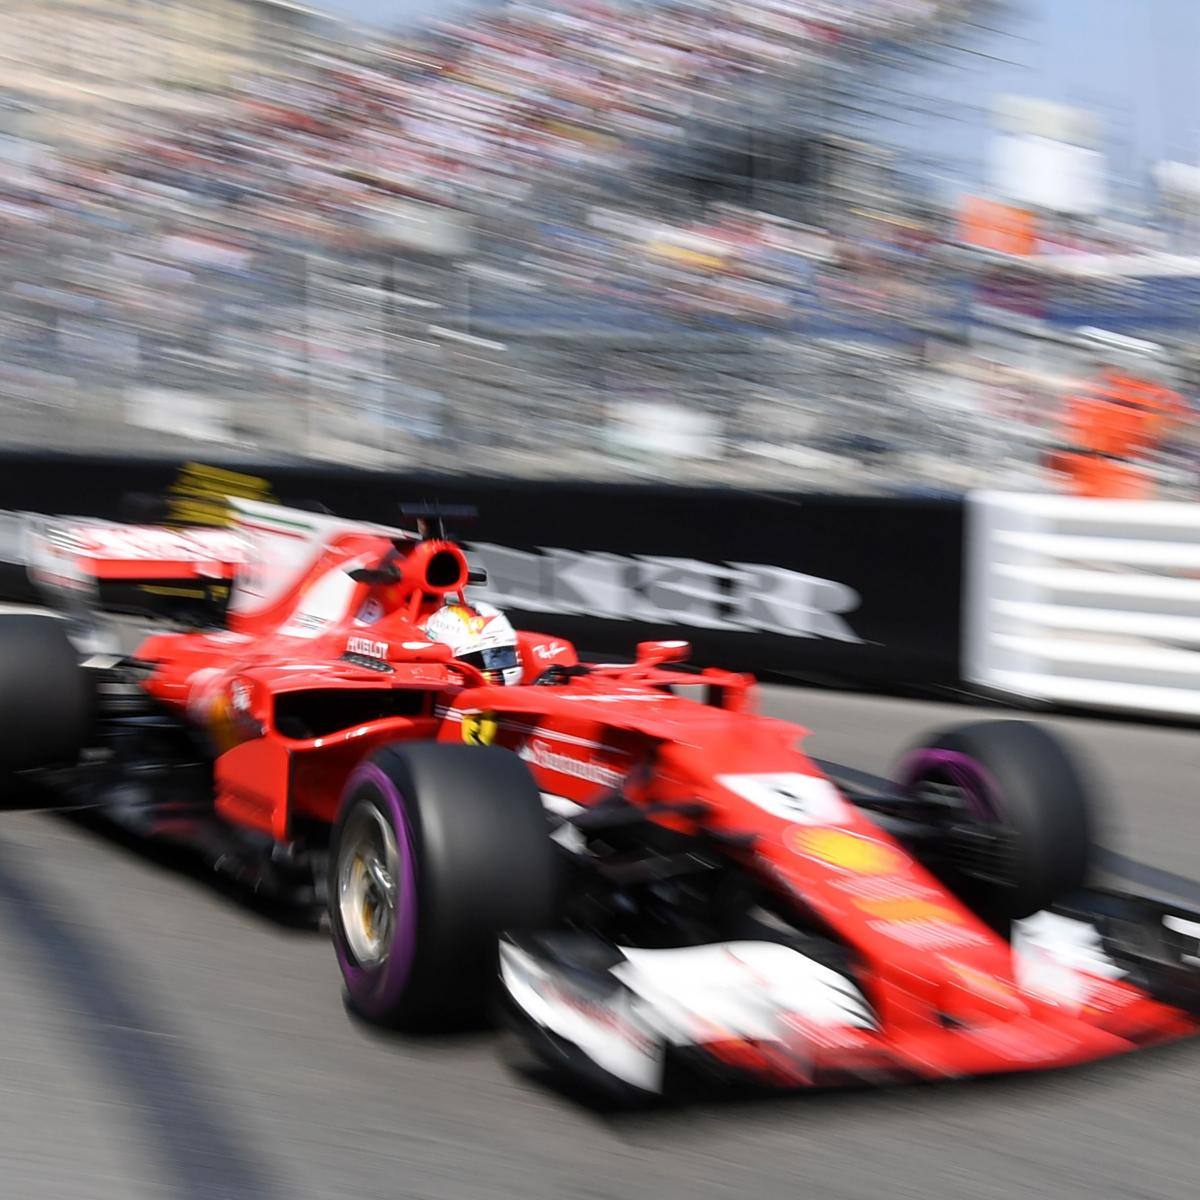 monaco f1 grand prix 2017 start time drivers tv schedule and more bleacher report latest. Black Bedroom Furniture Sets. Home Design Ideas